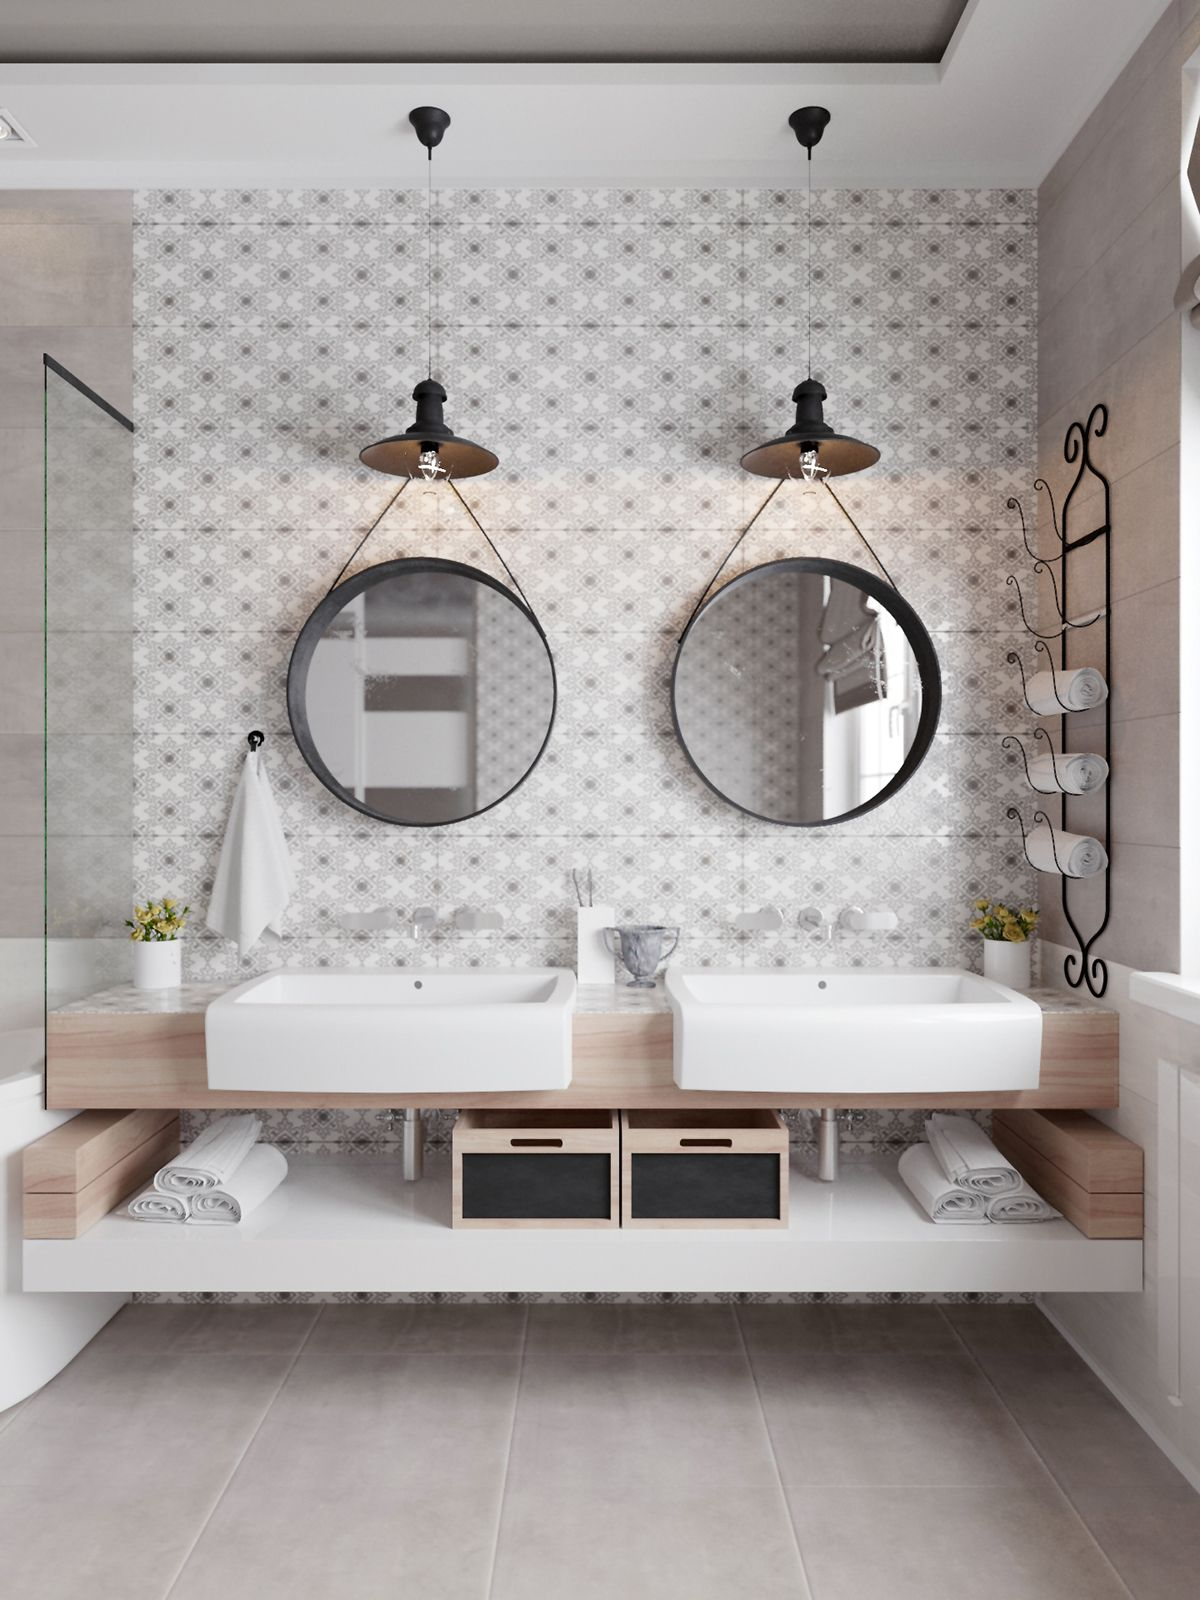 Bathroom in scandinavian style deco casa pinterest